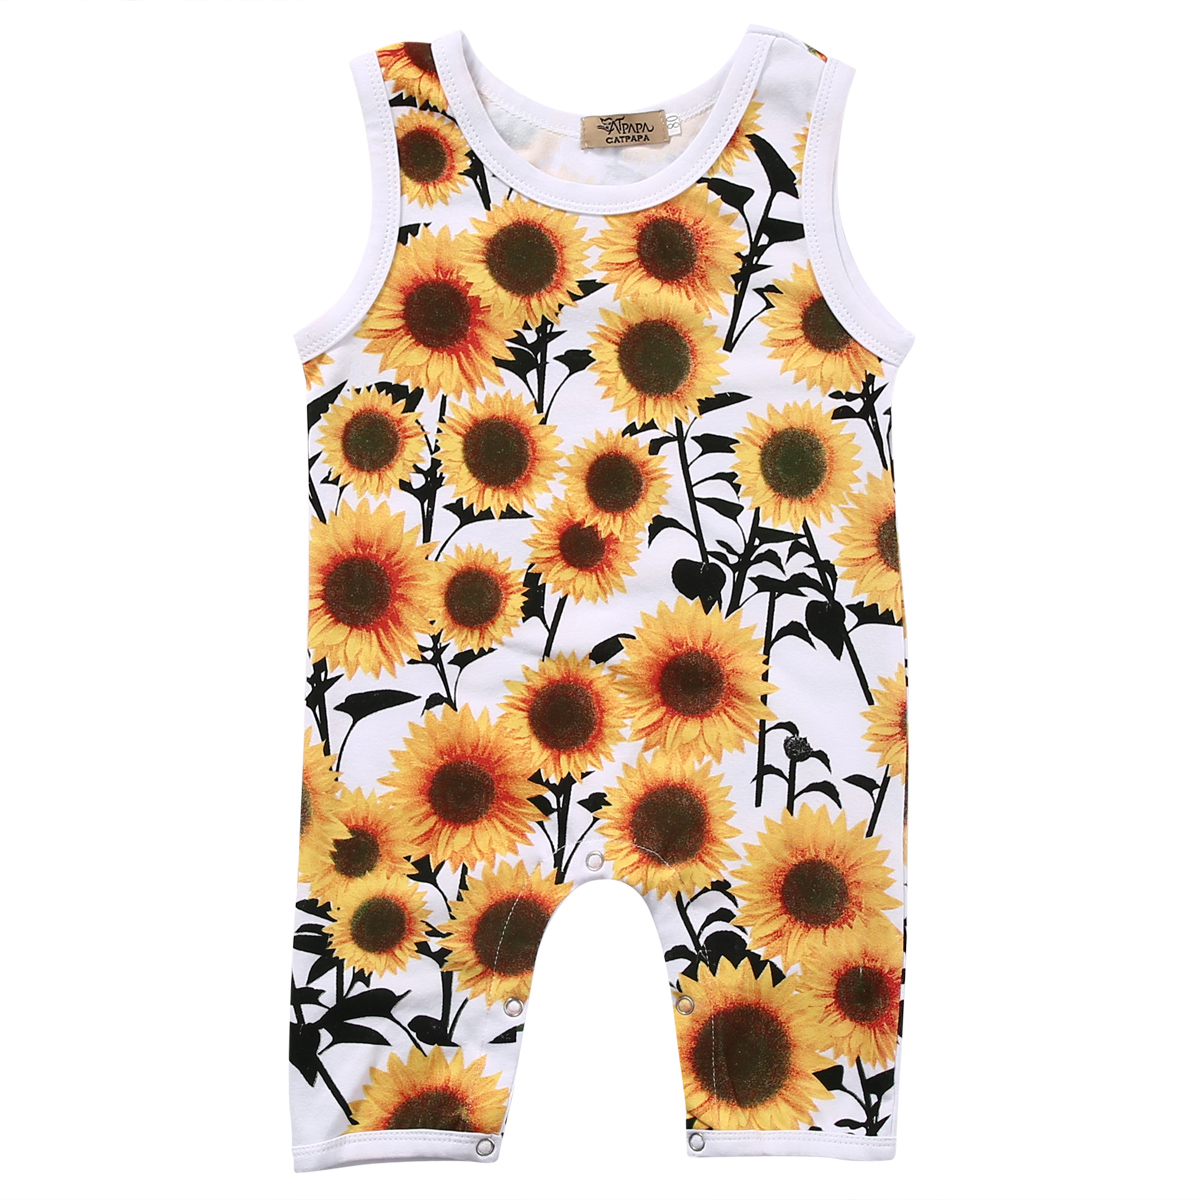 Cute Newborn Baby Clothes Sunflower Infant Bebes Girl Romper Sleeveless Toddler Kids Floral One Pieces Outfit Sunsuit cute newborn baby girls clothes floral infant bebes romper cotton jumpsuit one pieces outfit sunsuit 0 18m